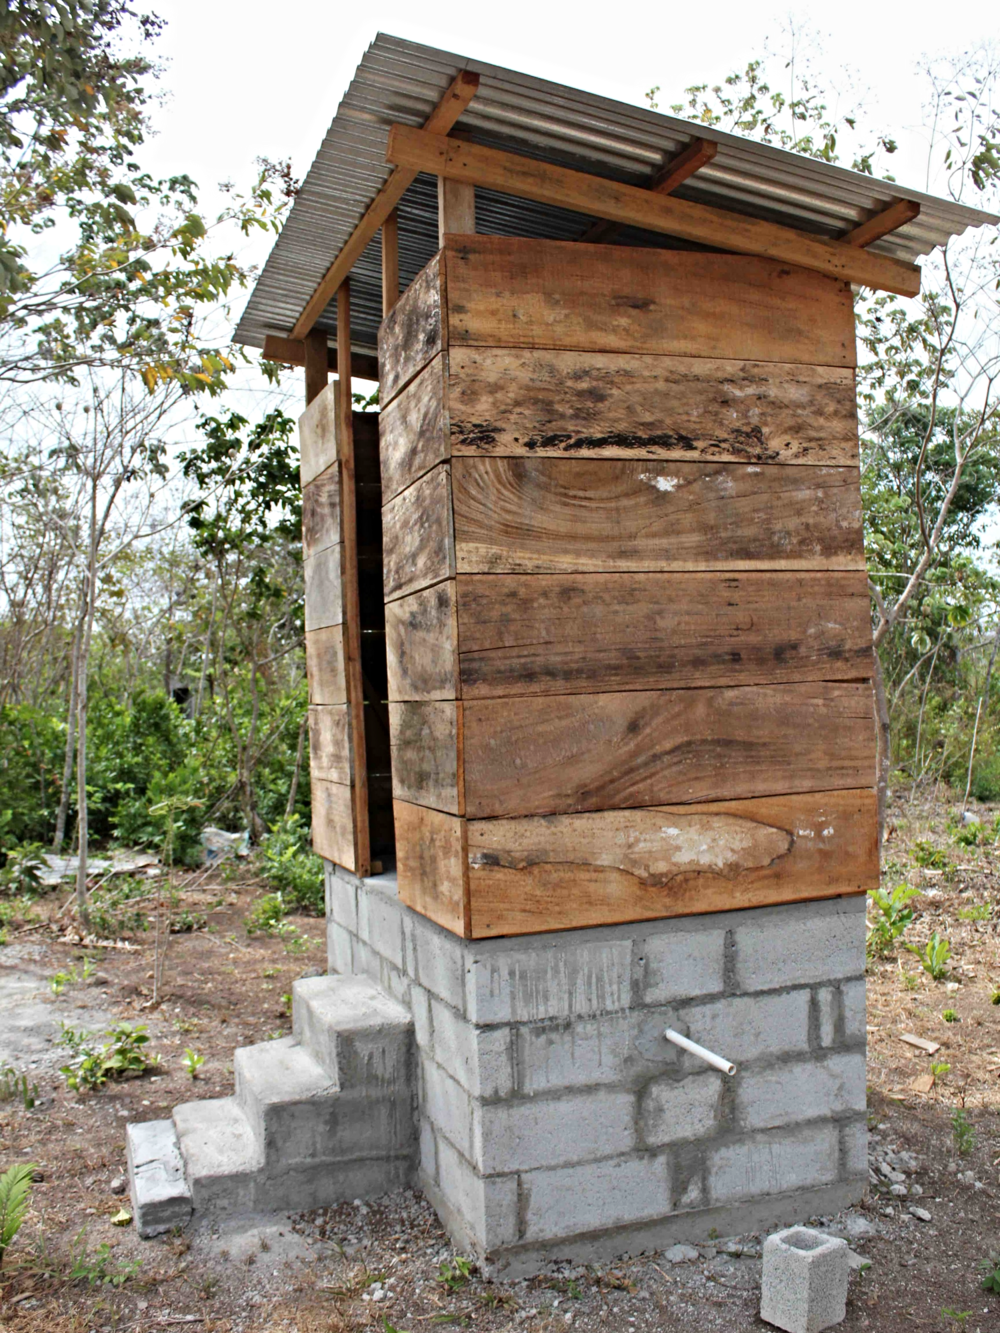 A composting latrine in Tranquilla, Panama, very similar to what the Reyes have - photo by Daysbeth López